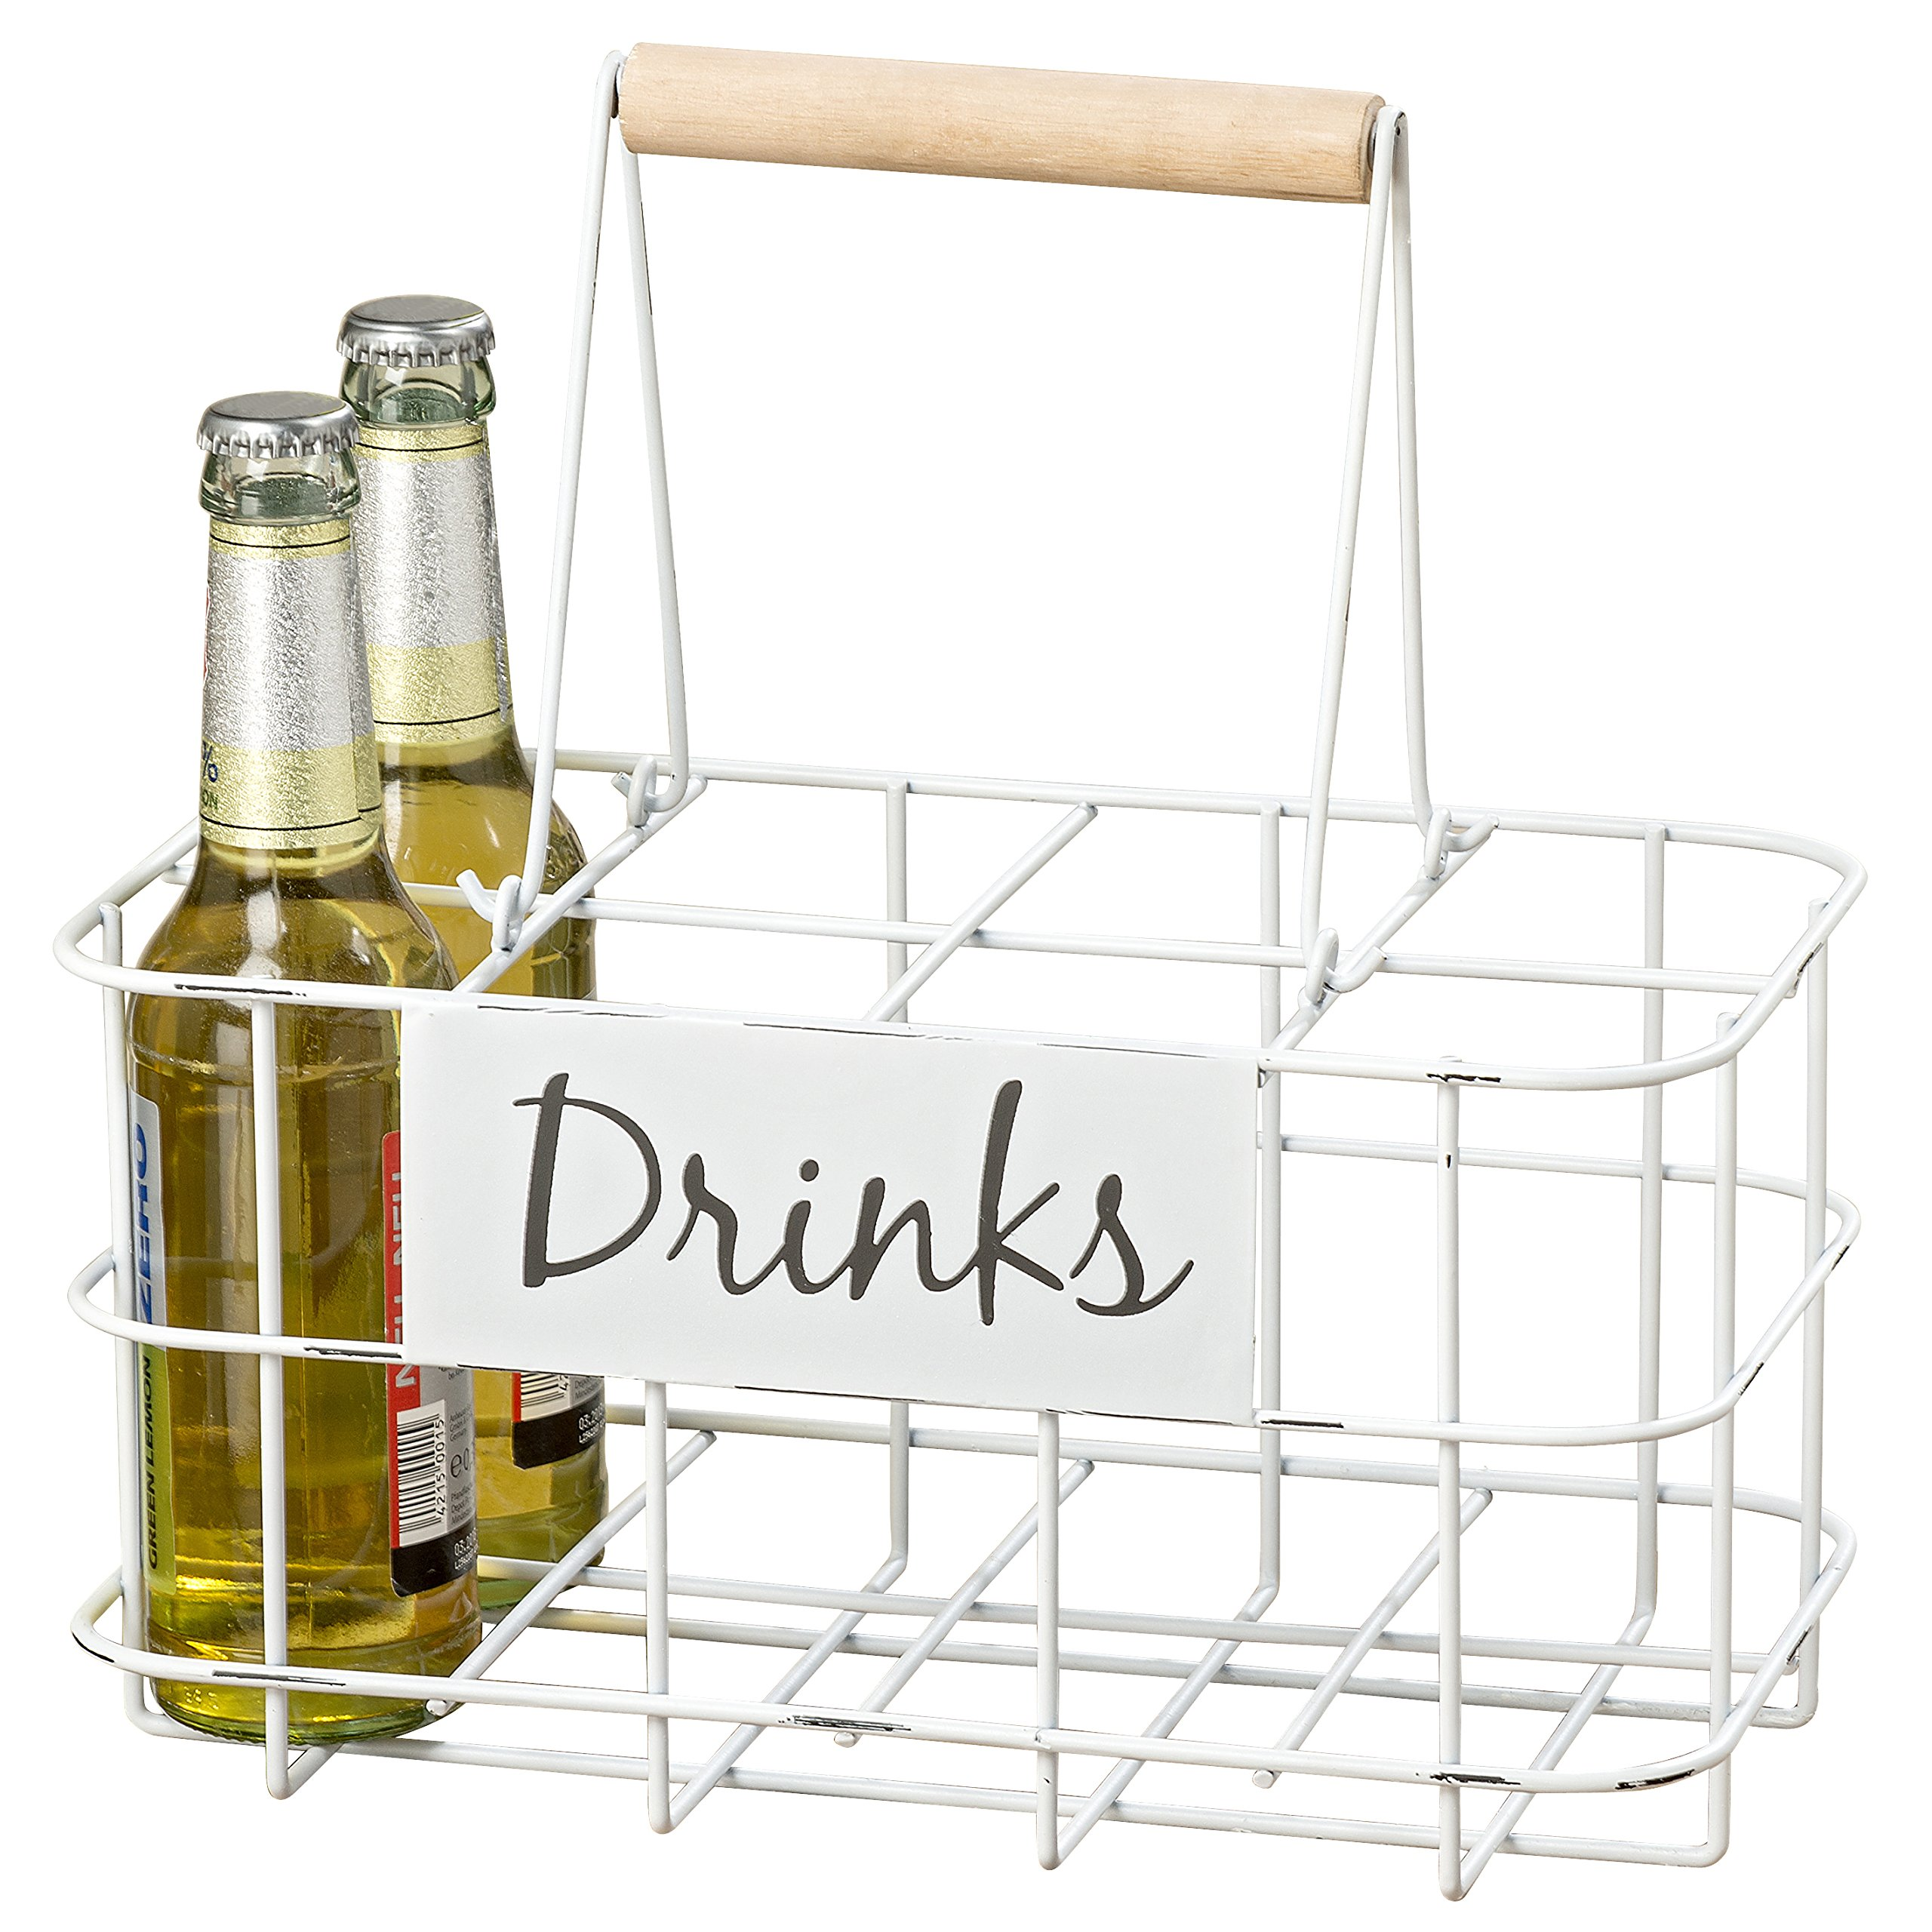 Whole House Worlds The Everyday Essential 8 Bottle Holder, Displayer, Vintage Style Milkman Carrier, Caddy, White Painted Iron, Distressed, 11 3/4 L x 6 3/4 H, Recycle and Reuse